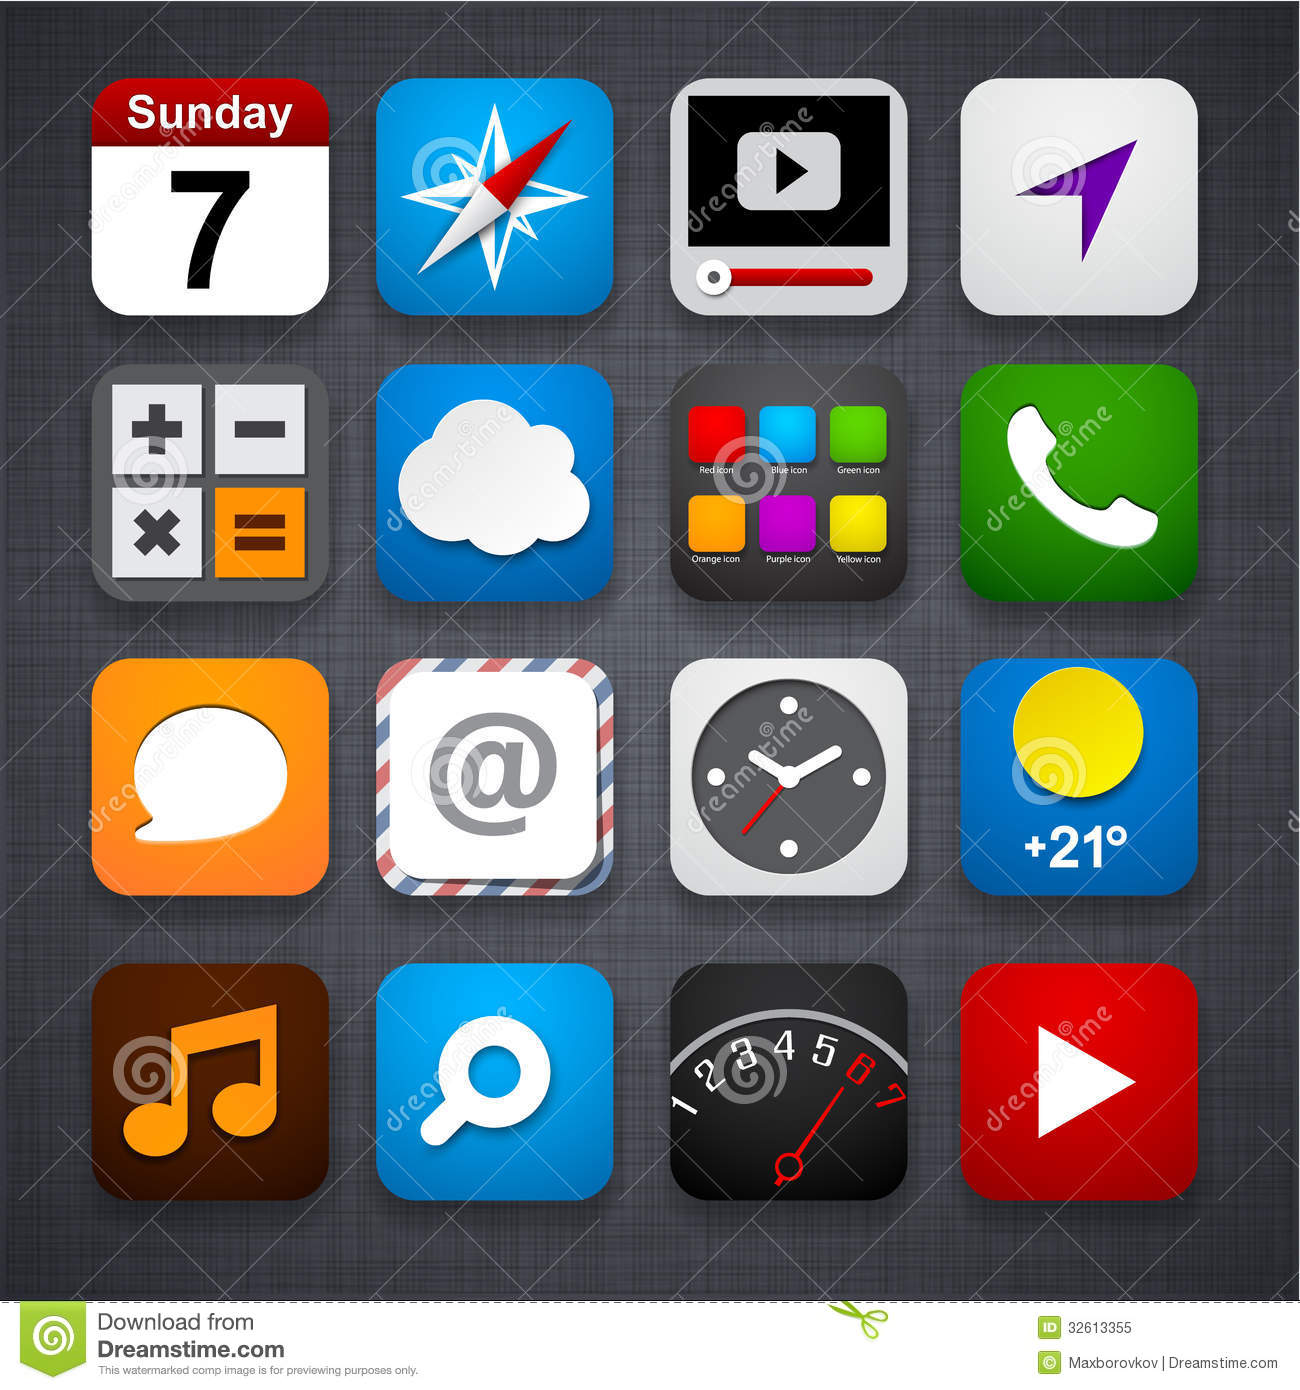 20 Vector App Icons To Images Free App Icons Vector App